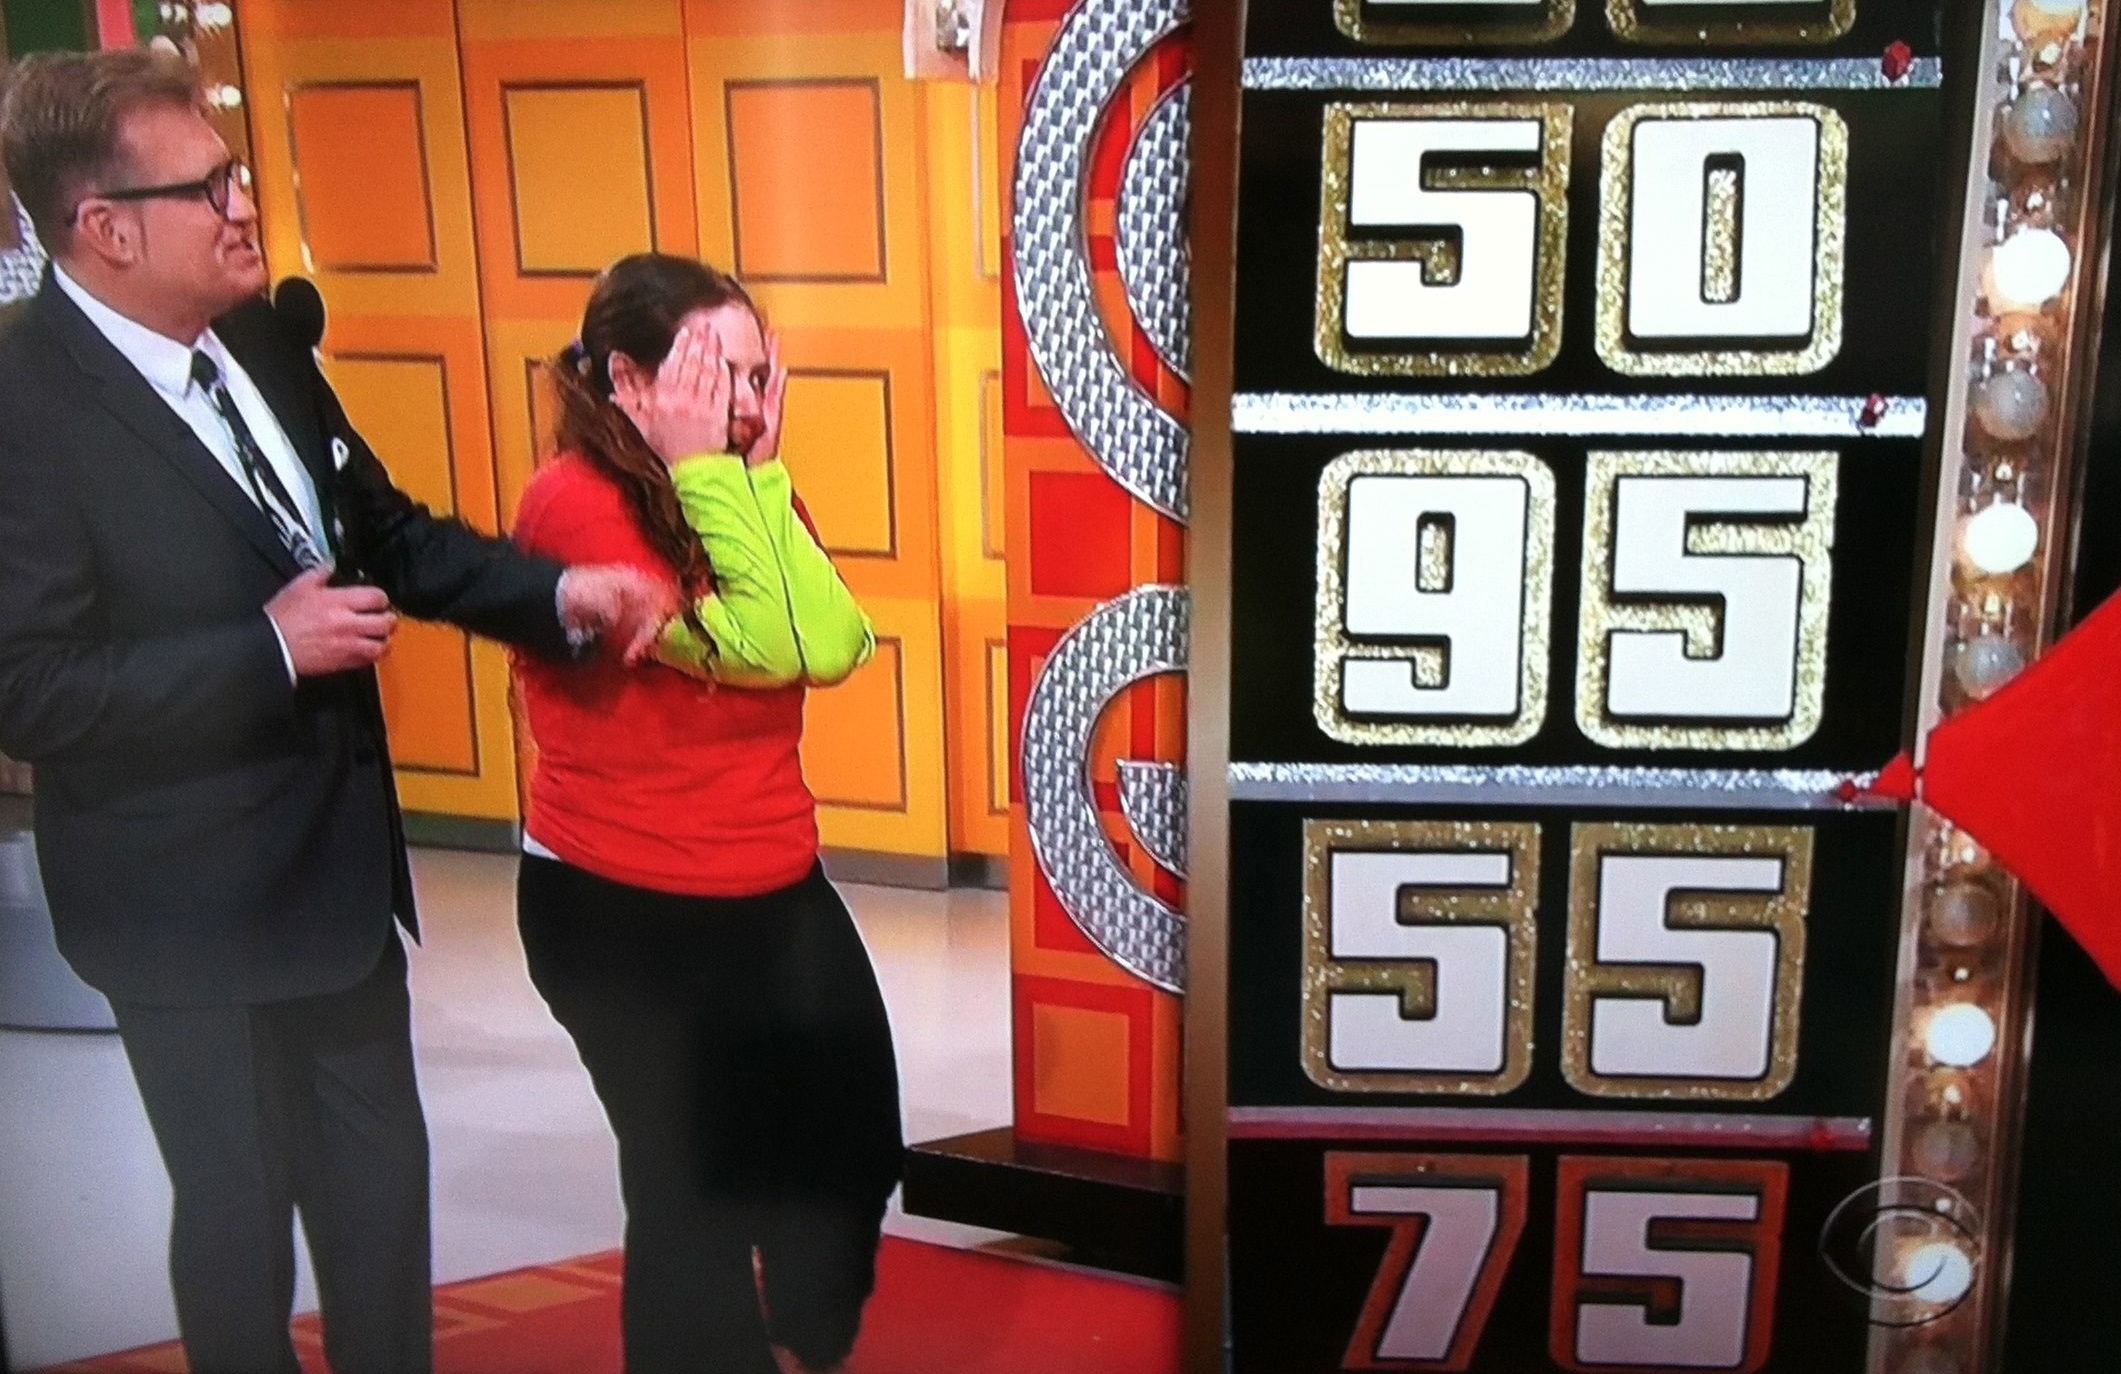 Aurora De Lucia narrowly missing 95 cents at The Price is Right wheel with Drew Carey